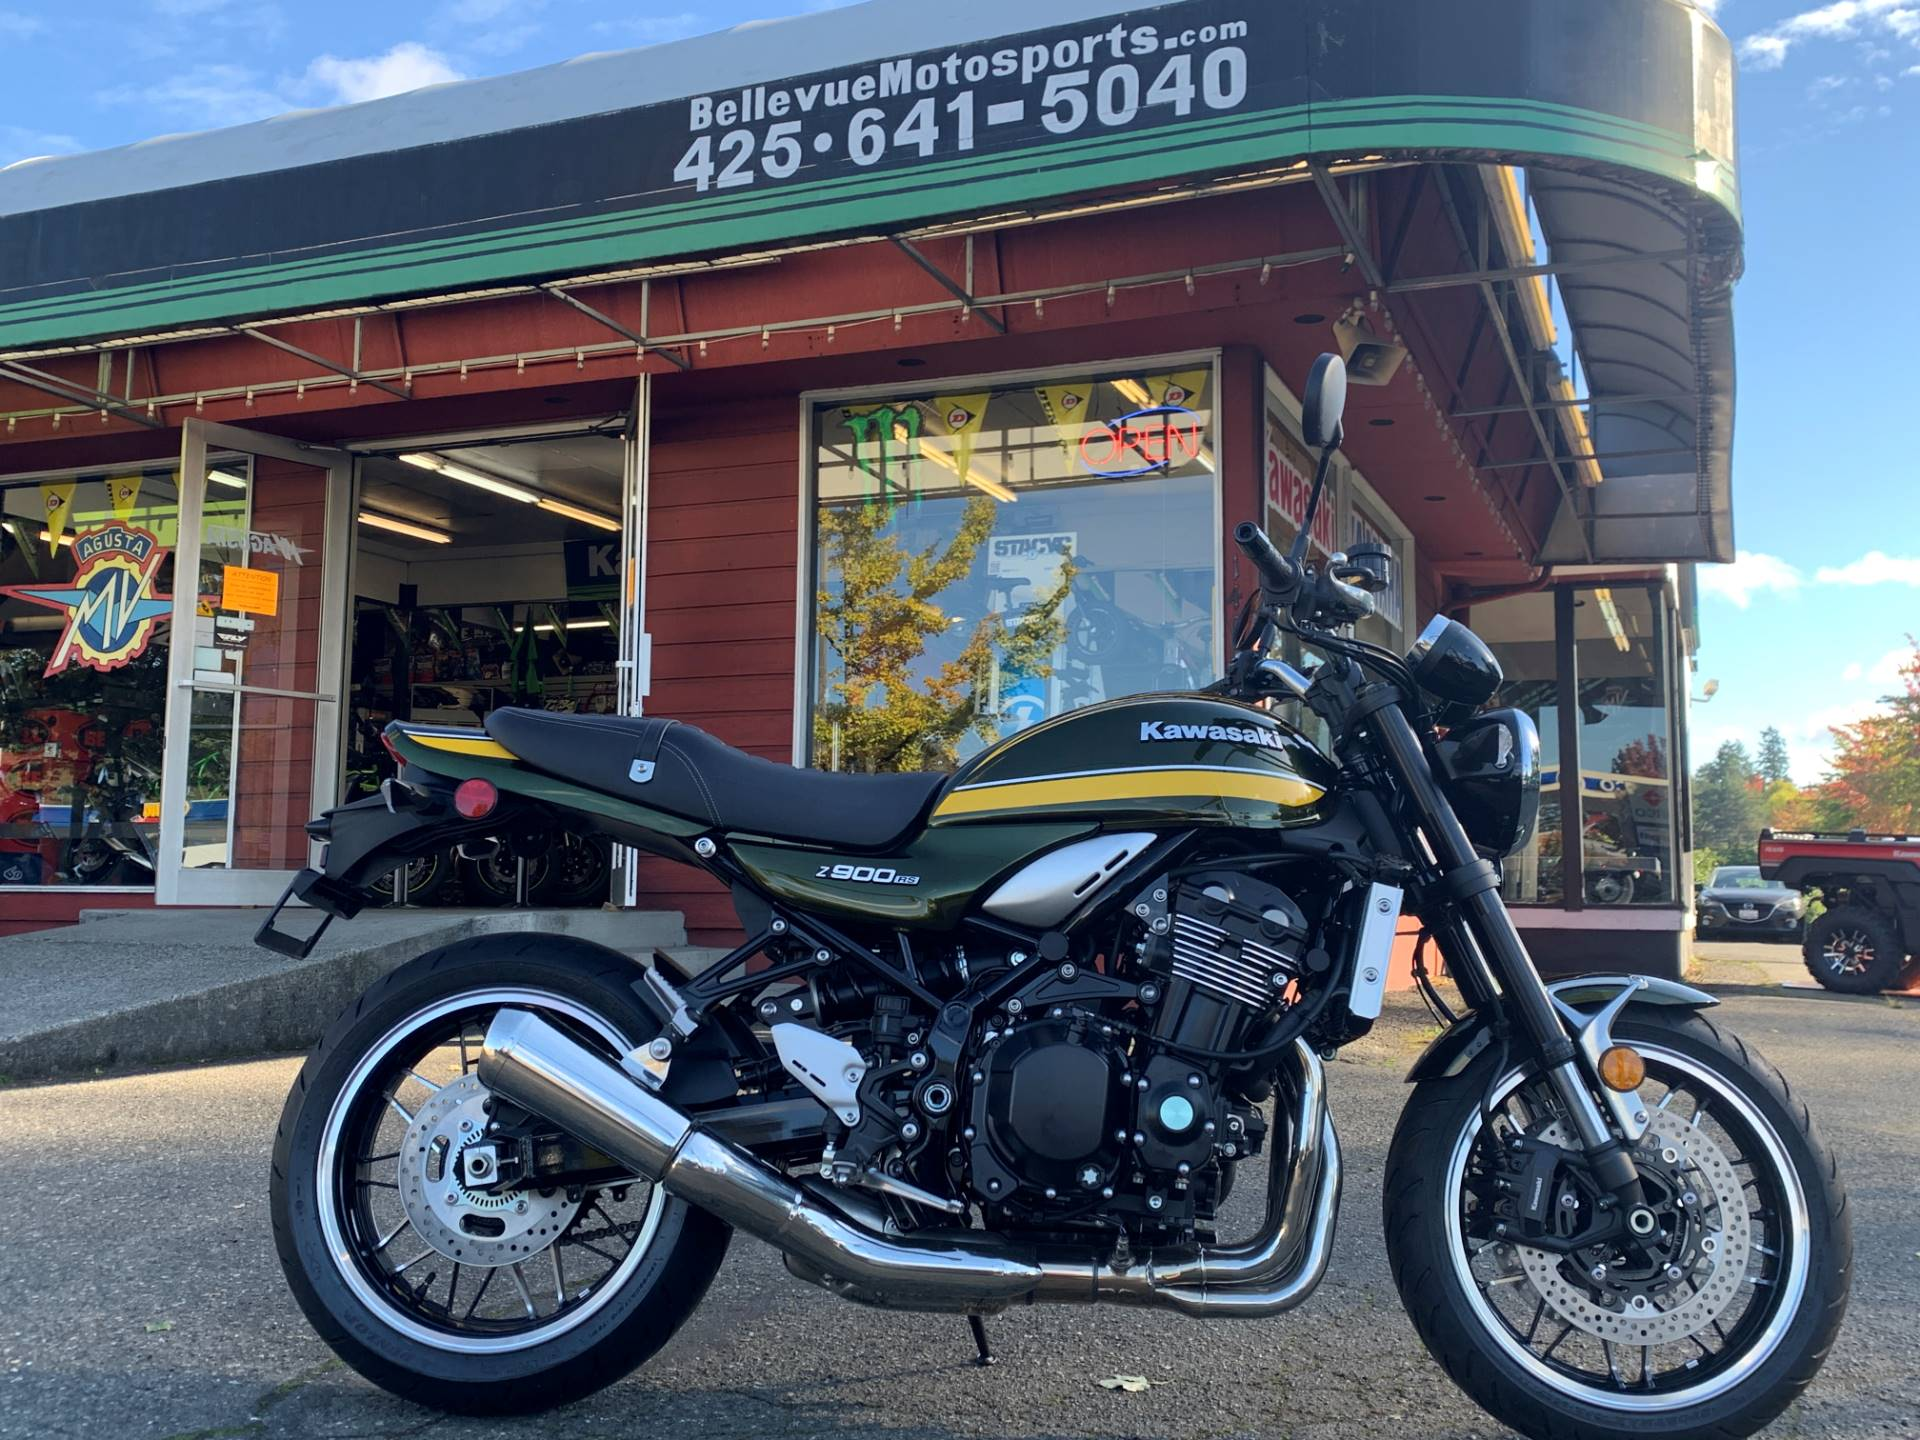 2020 Kawasaki Z900RS ABS in Bellevue, Washington - Photo 1